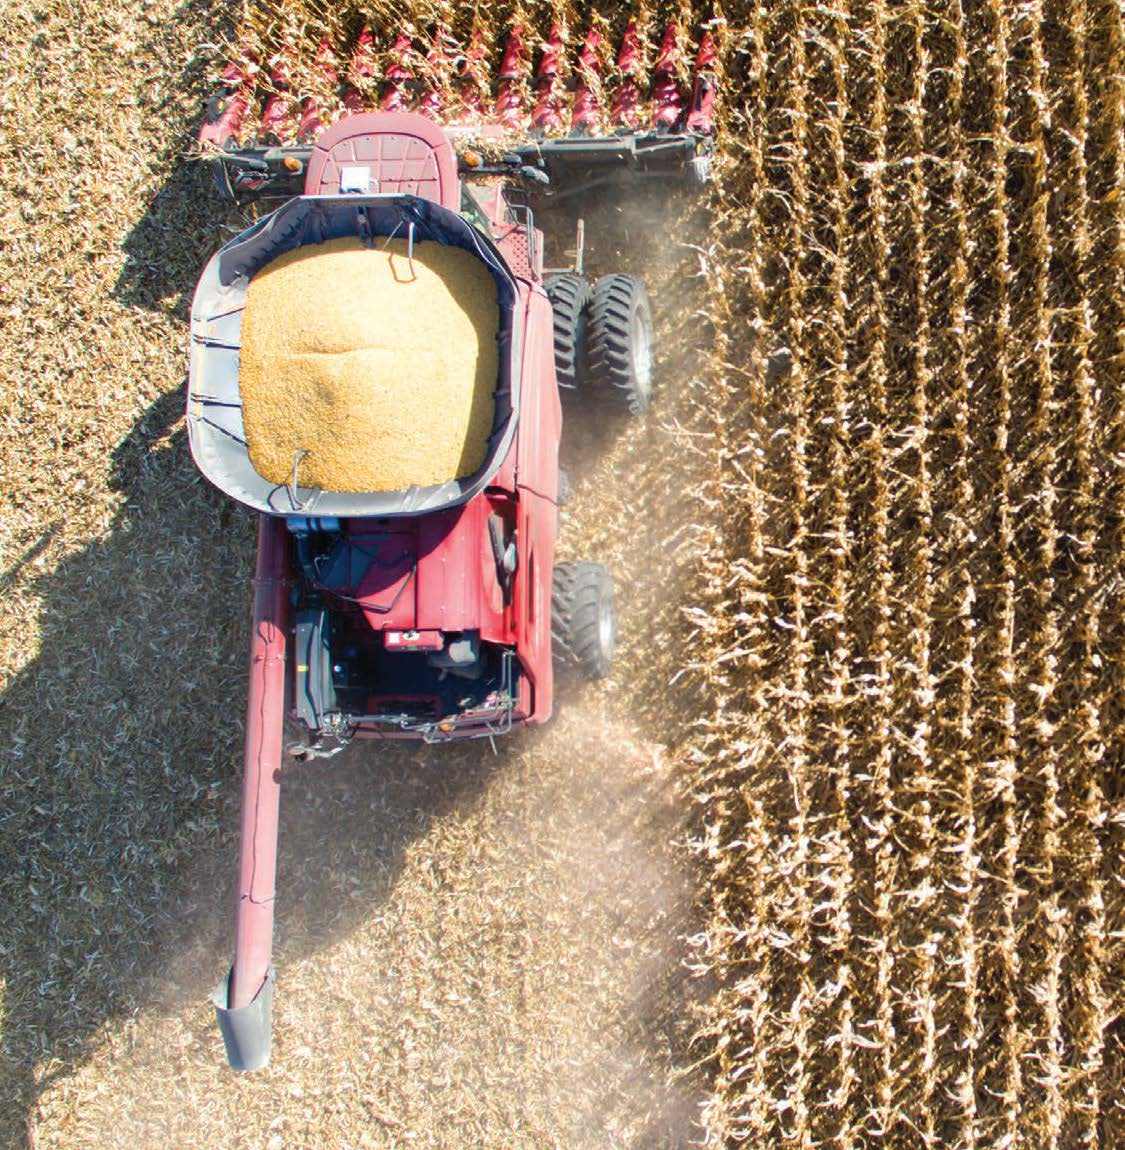 Tractor from above harvest crops